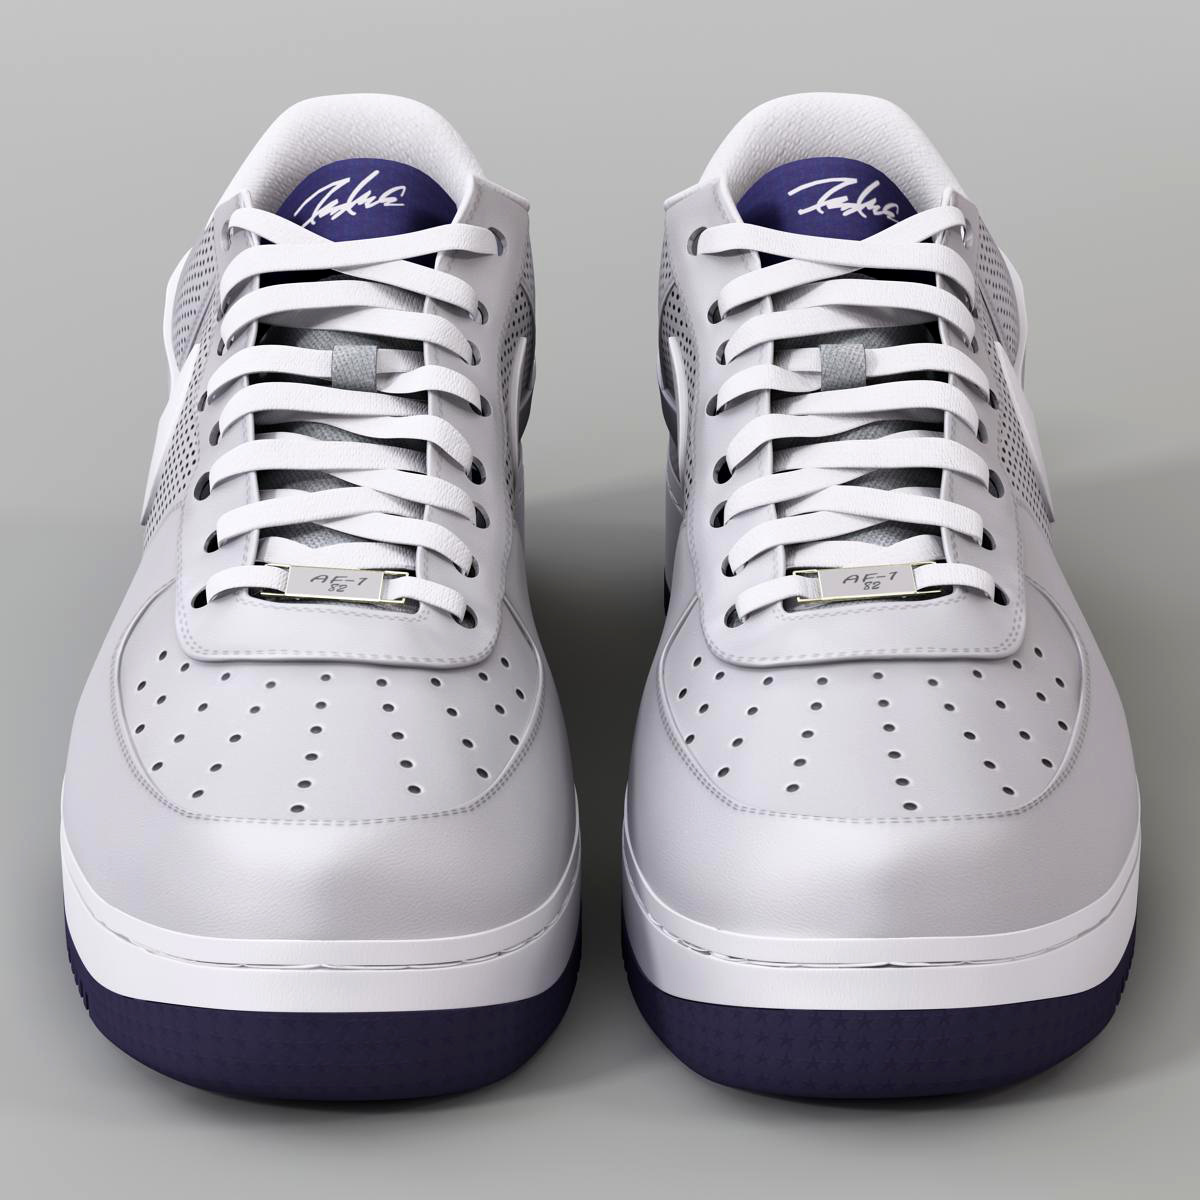 Sneakers_Nike_Air_Force_001.jpg